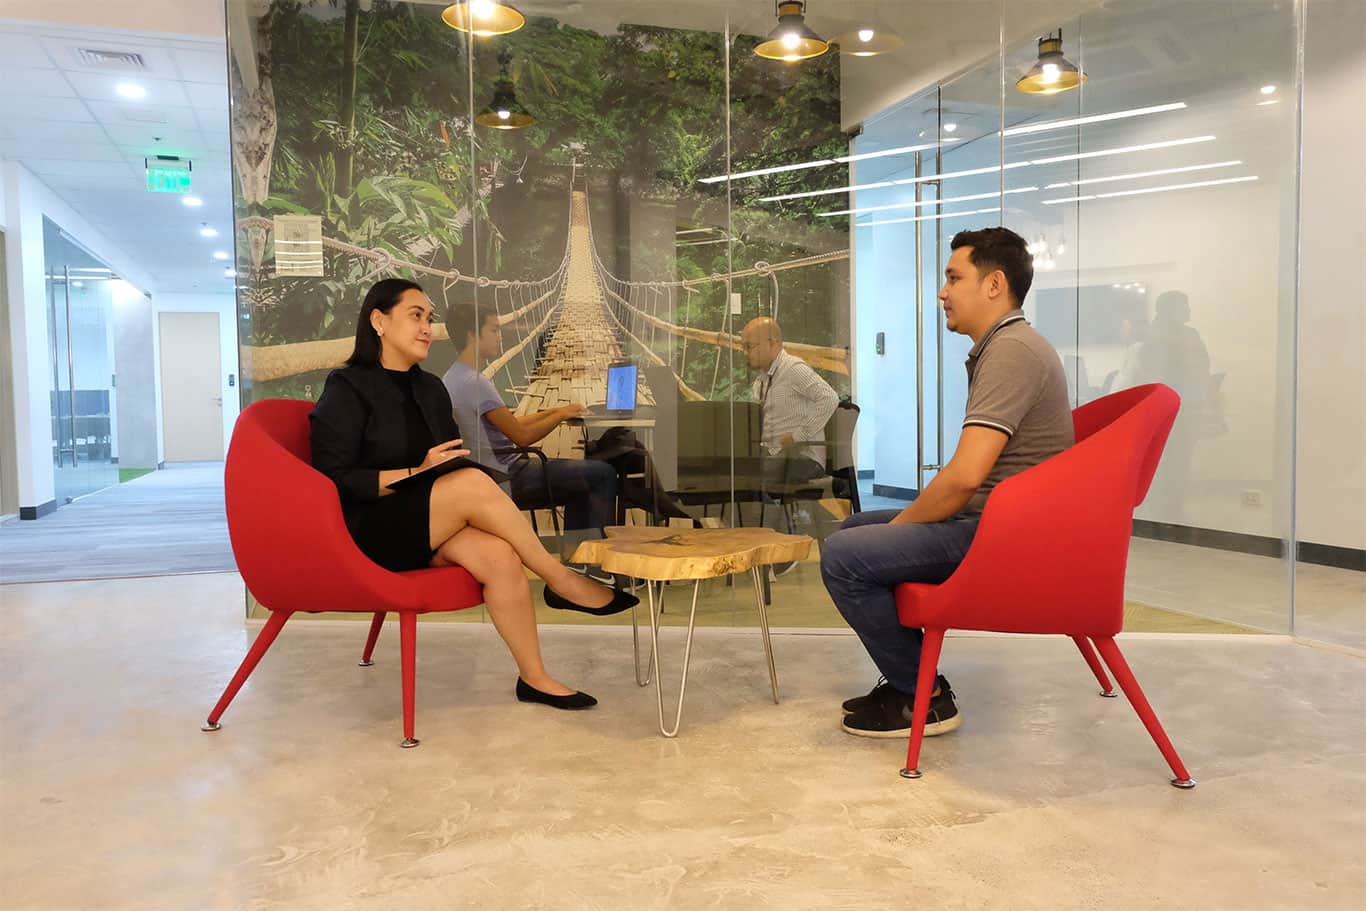 Private Office with 24 desks at Sheridan Tower, Mandaluyong